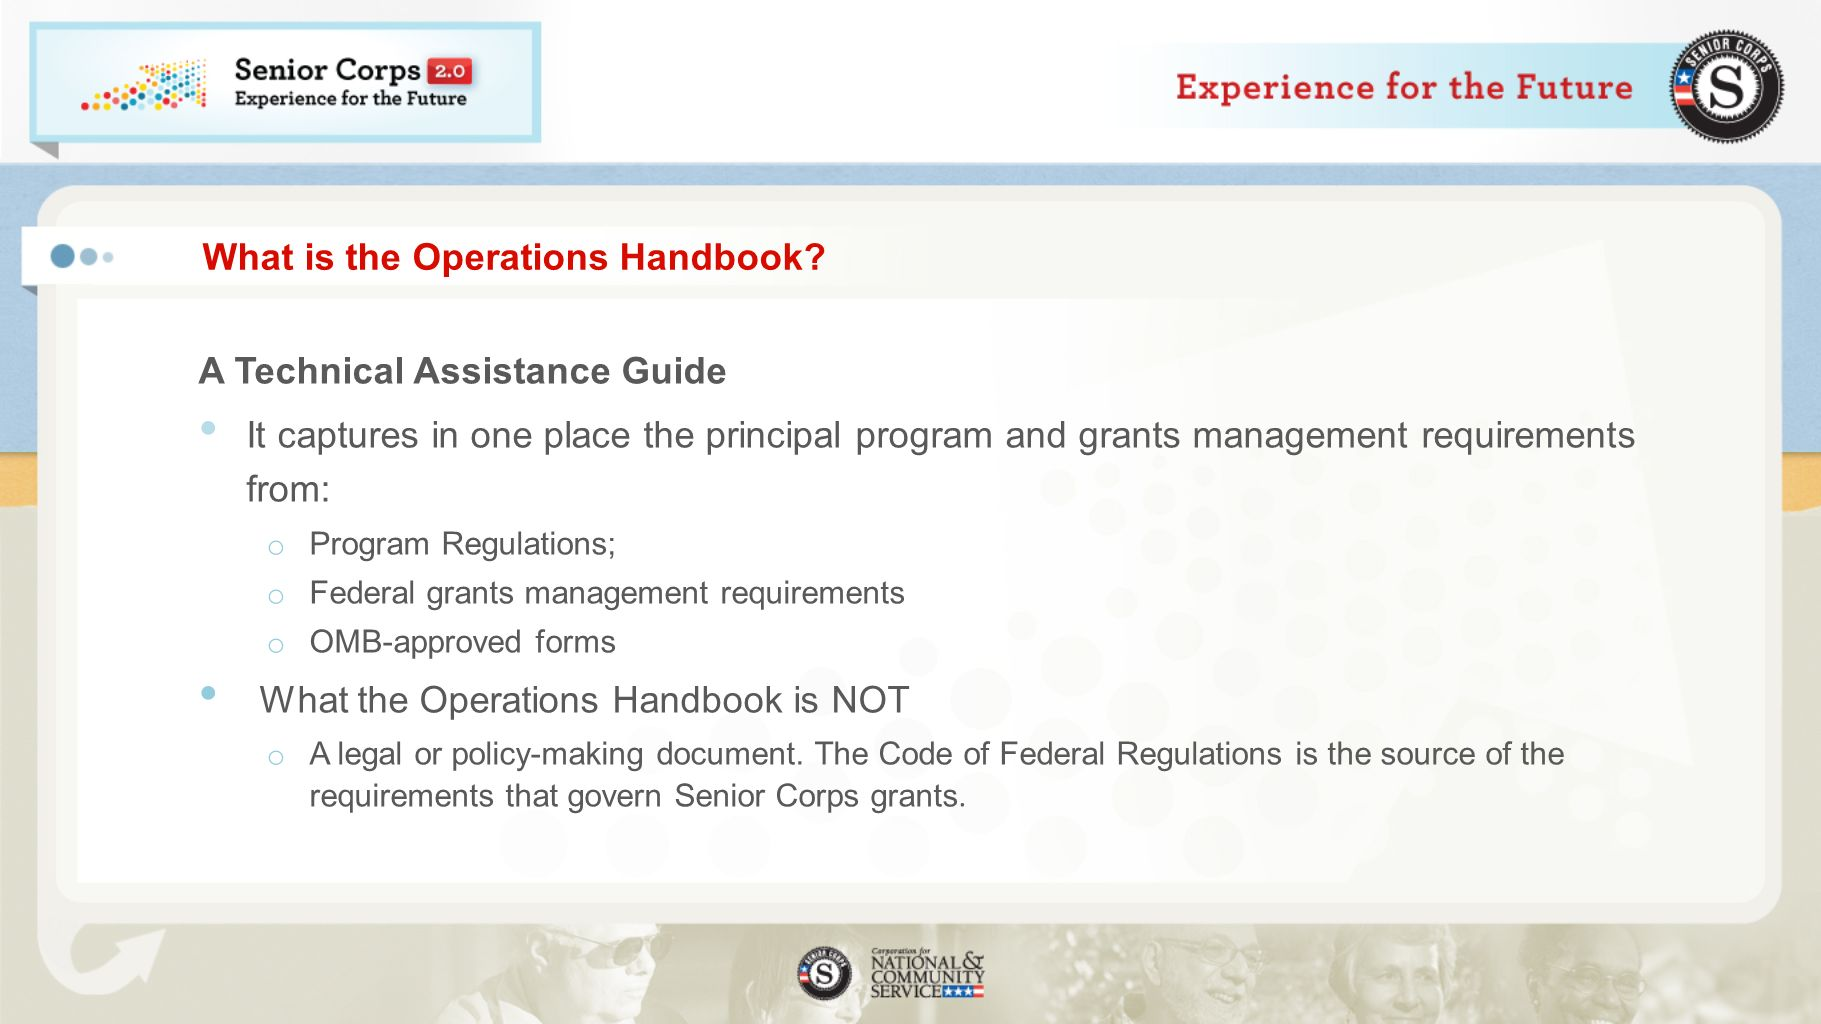 What is the Operations Handbook